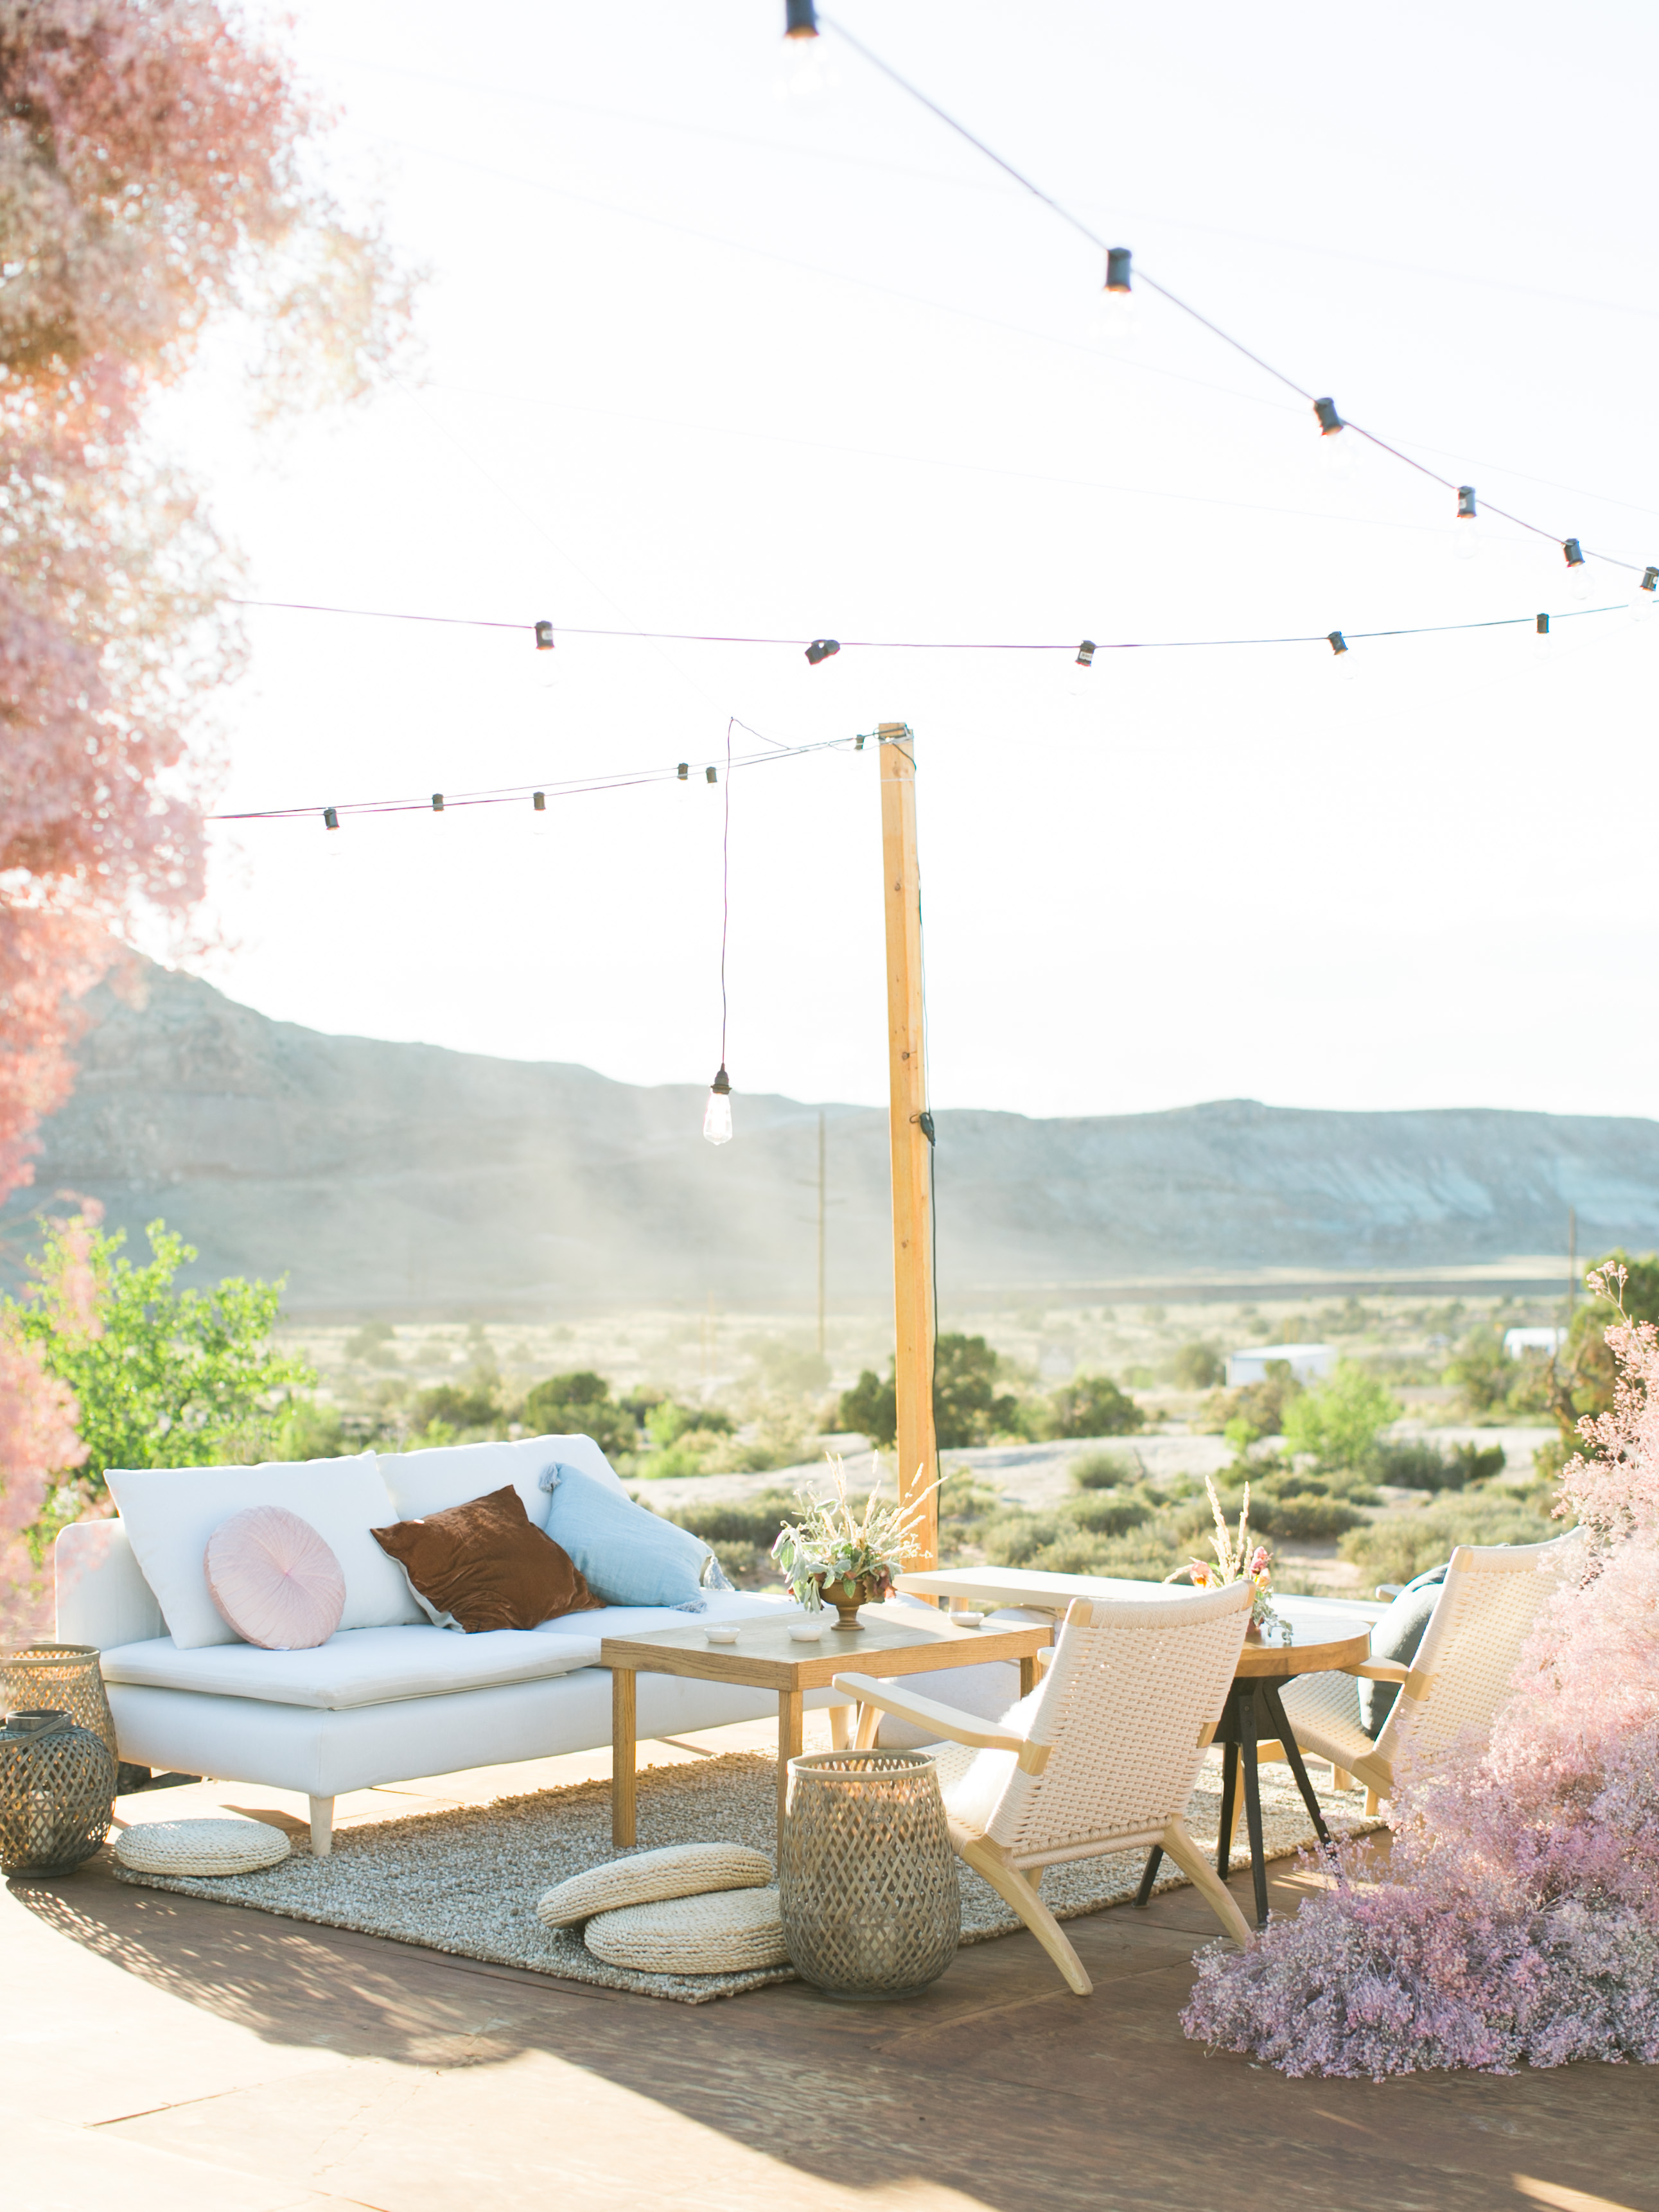 jeanette david wedding outdoor lounge area